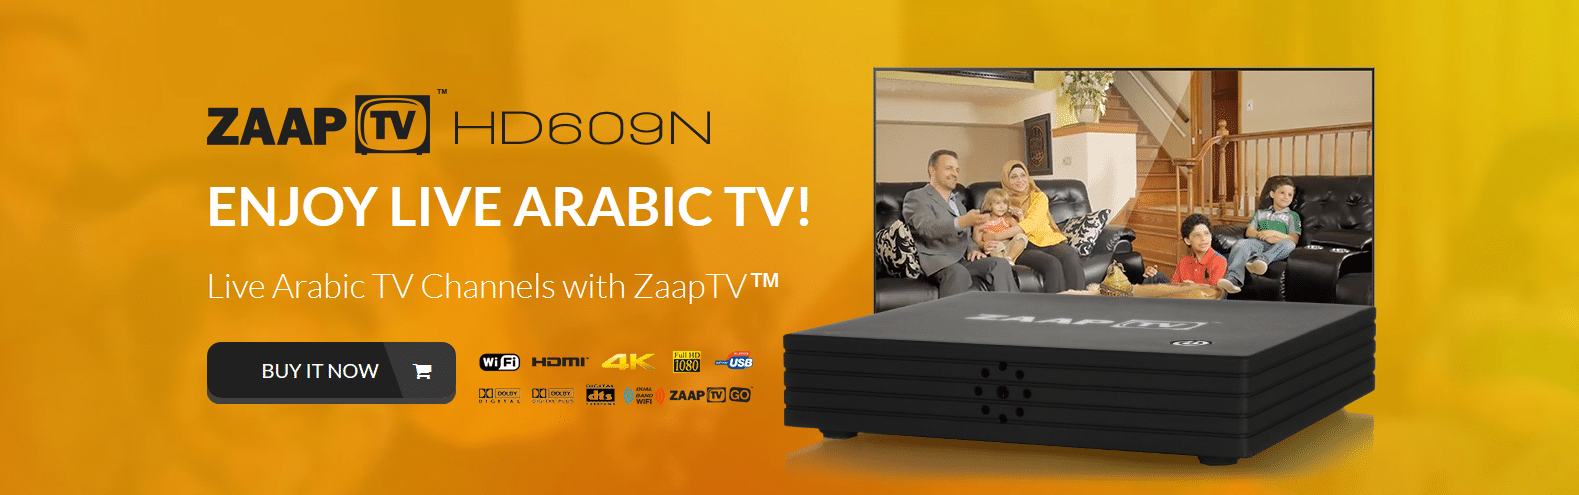 ZAAPTV-HD609-Android-Get-LIVE-ARABIC-TV-Channels-Online-IPTV